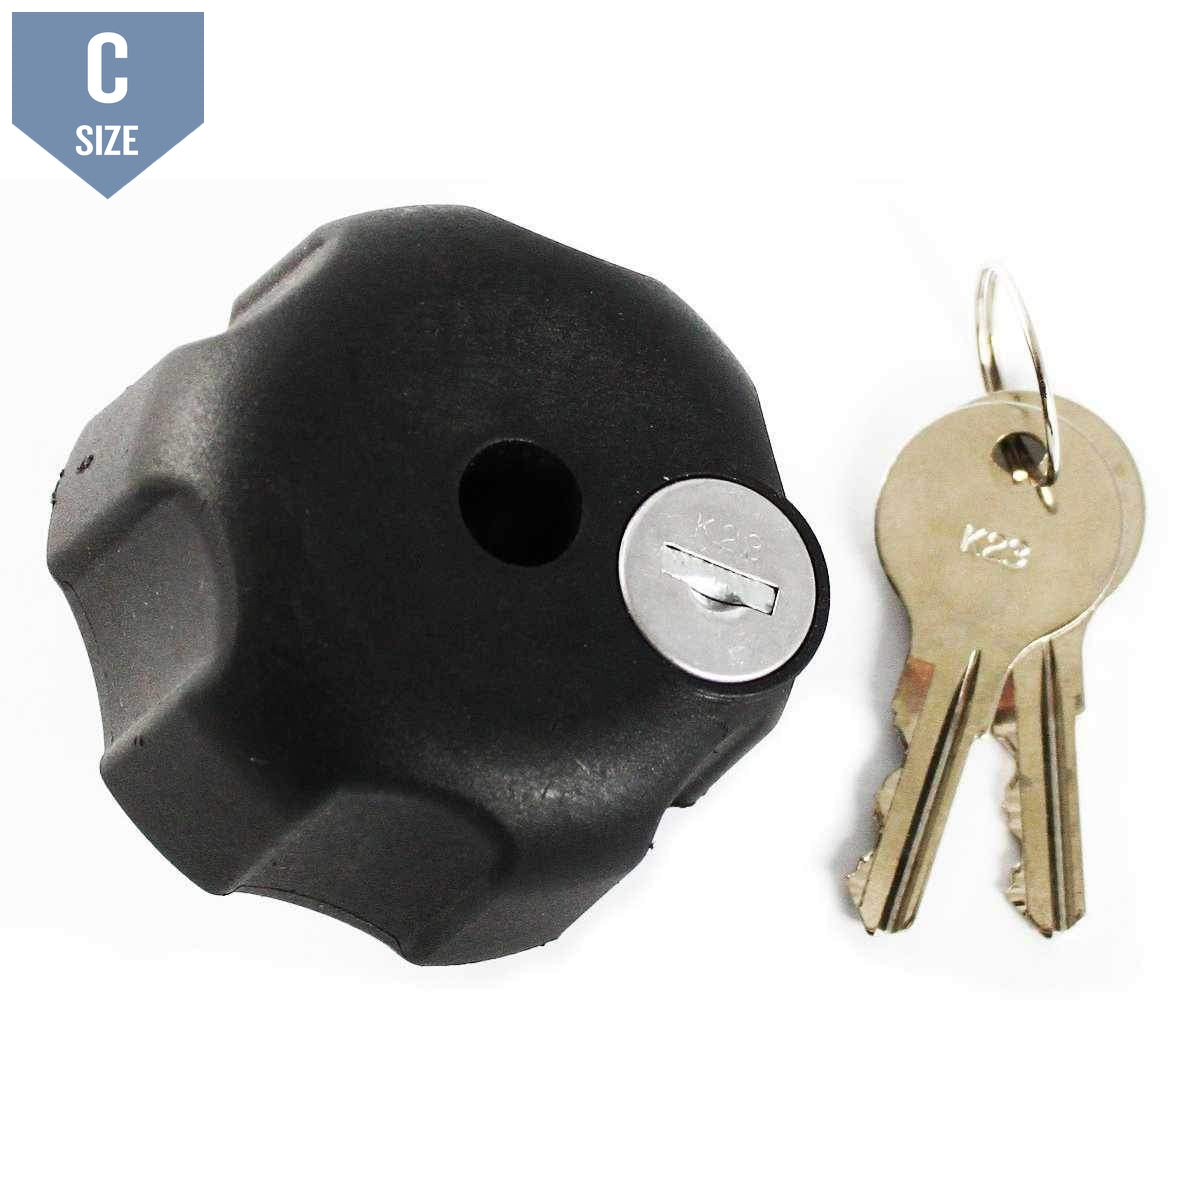 RAM Locking Knob for C Size Arm Clamps (RAM-KNOB5LU)-Modest Mounts